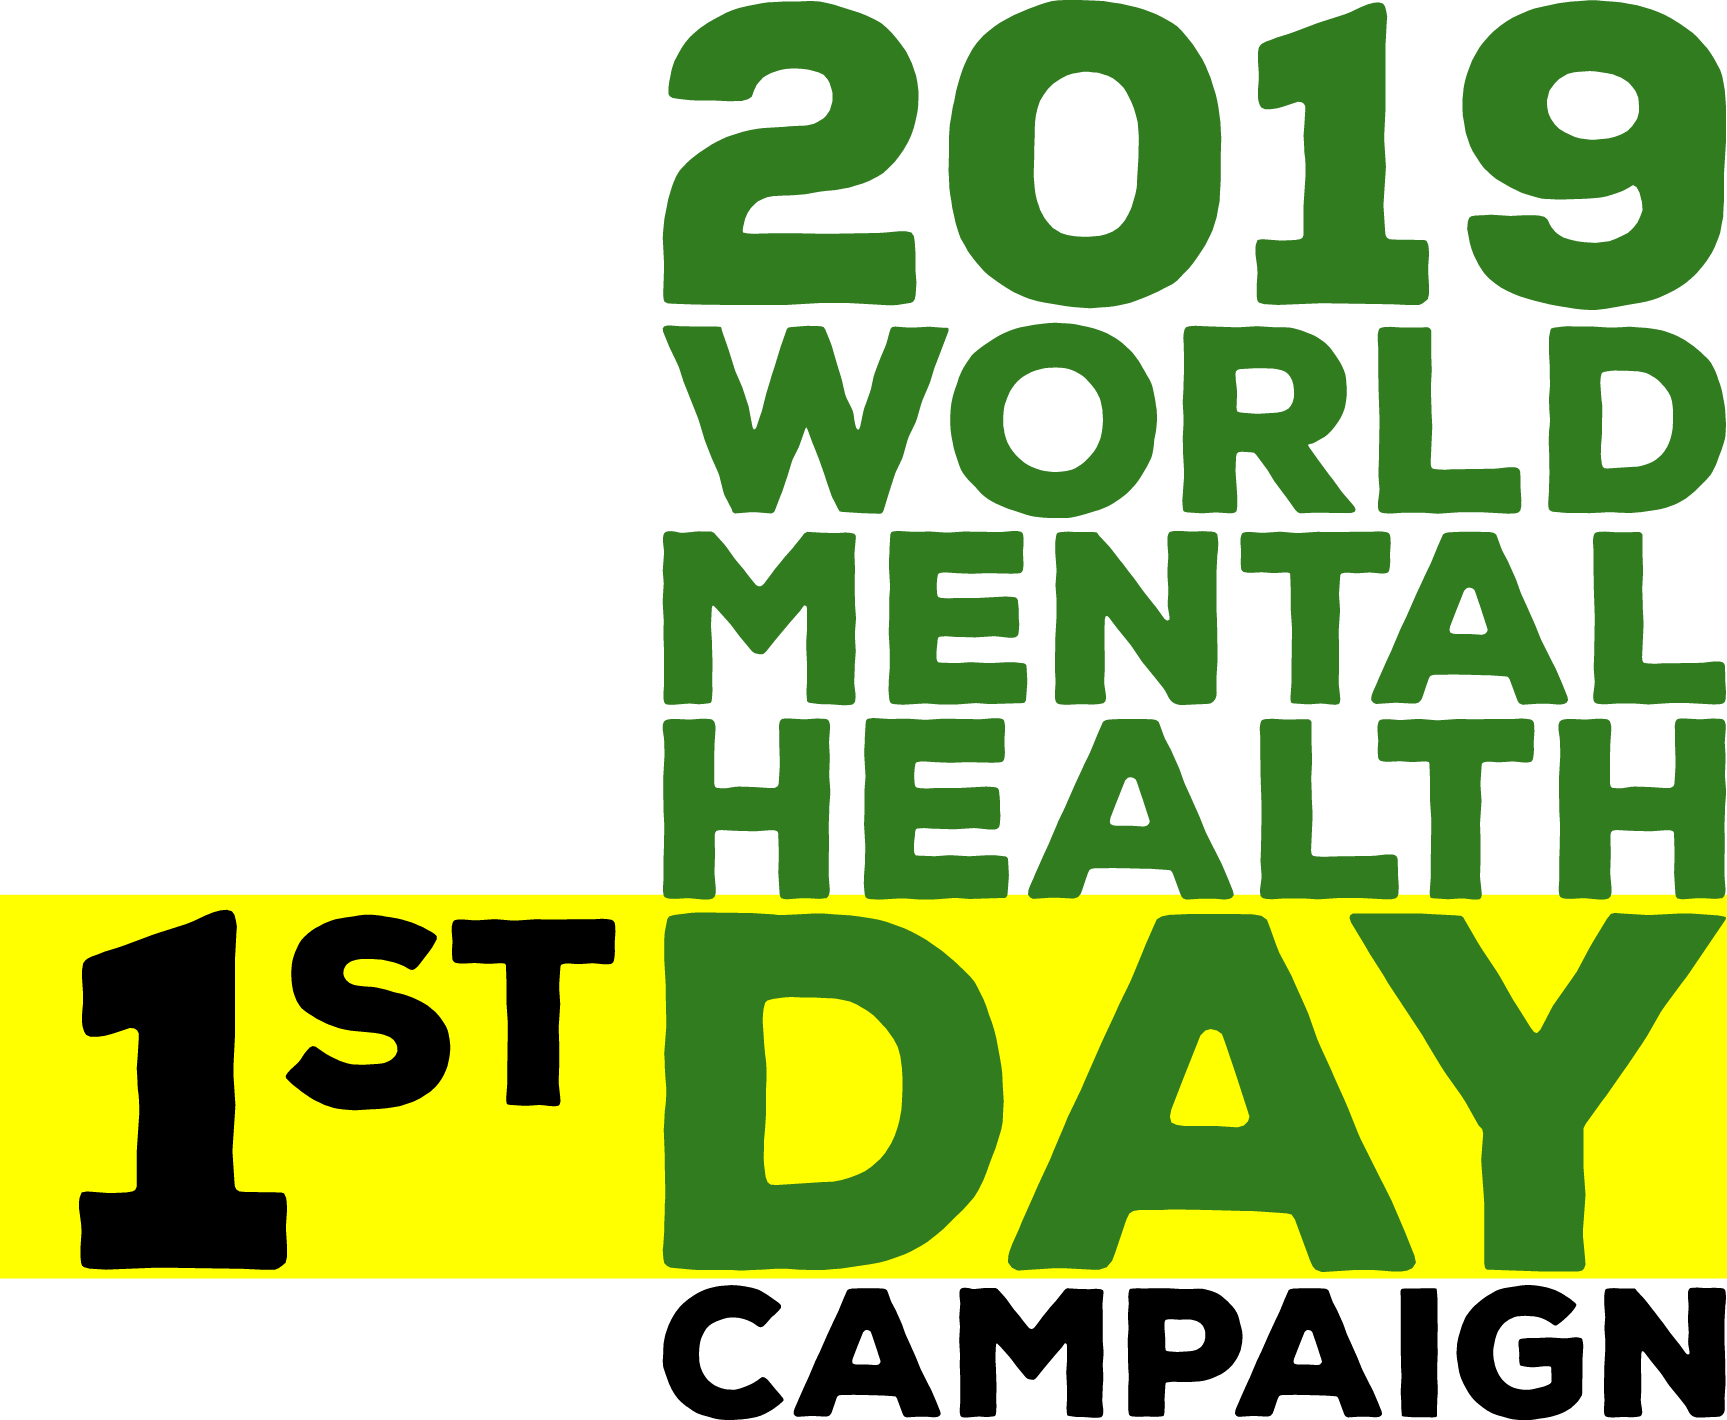 2019 world mental health day campaign logo 1st day